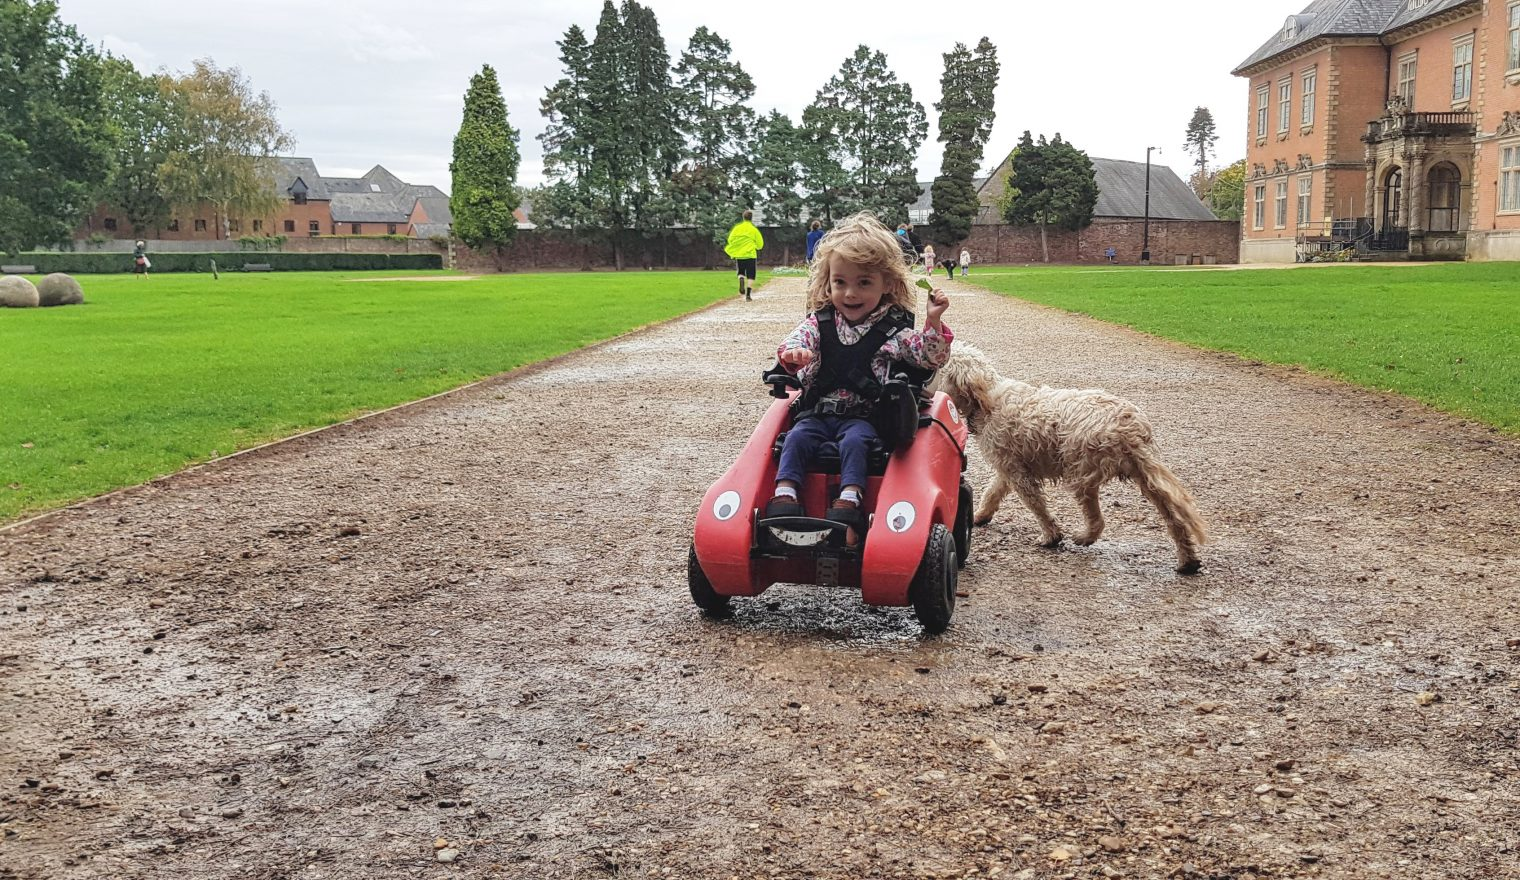 Young girl in a Wizzybug powered wheelchair outside with a dog